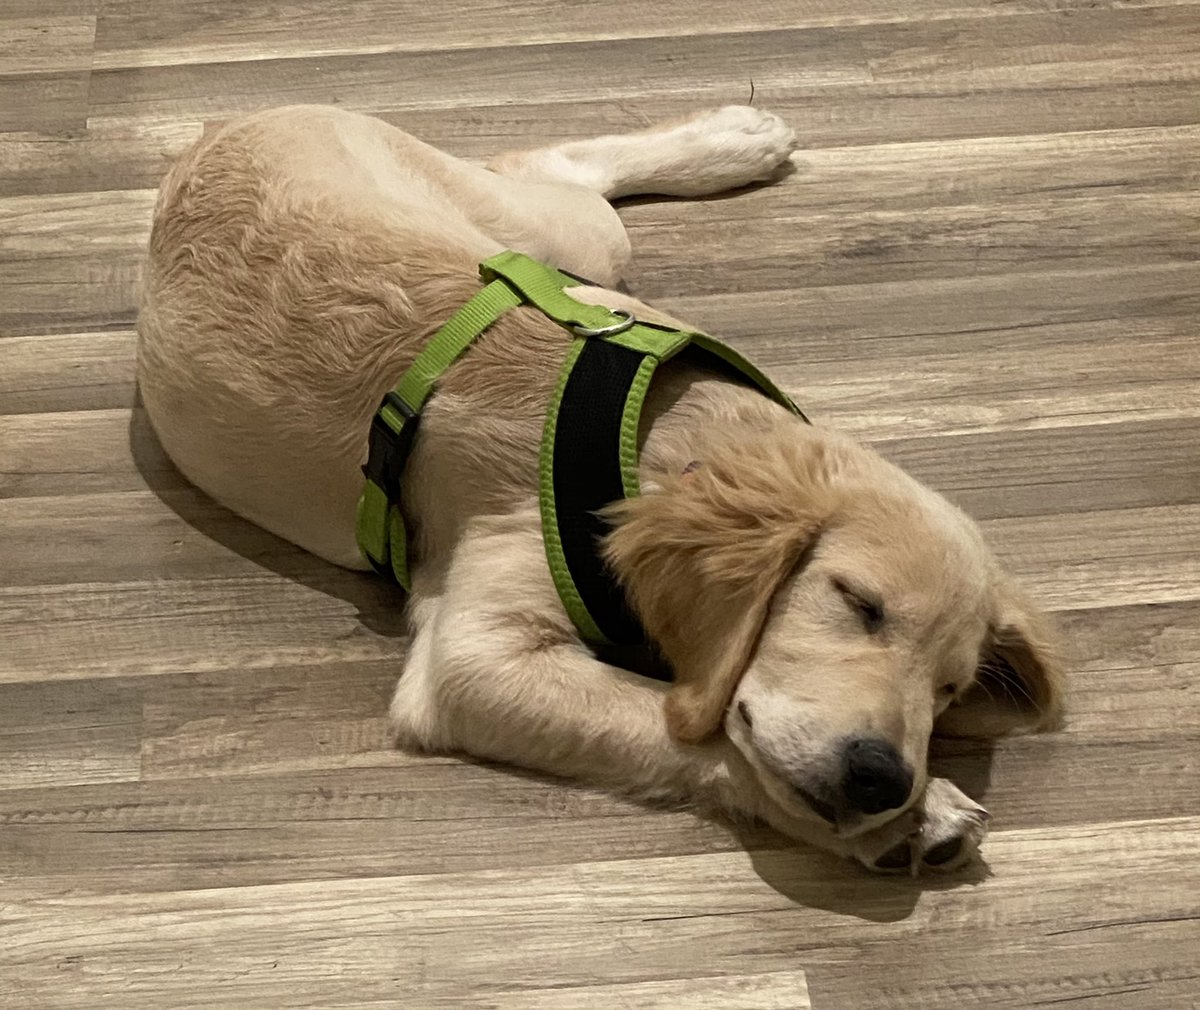 Good night 💤 everyone. I'm so tired for the day. I had been out for an hour and played a lot. Wish you enjoy your night Love from Simon  #Goodnight #goodmorning #puppy #dogsoftwitter #dogs #dog #love #sleep #SleepyJoe #Instagram #YouTuber #YouTube #funny #FUNKY #joy #happiness https://t.co/hsOdIFERWj